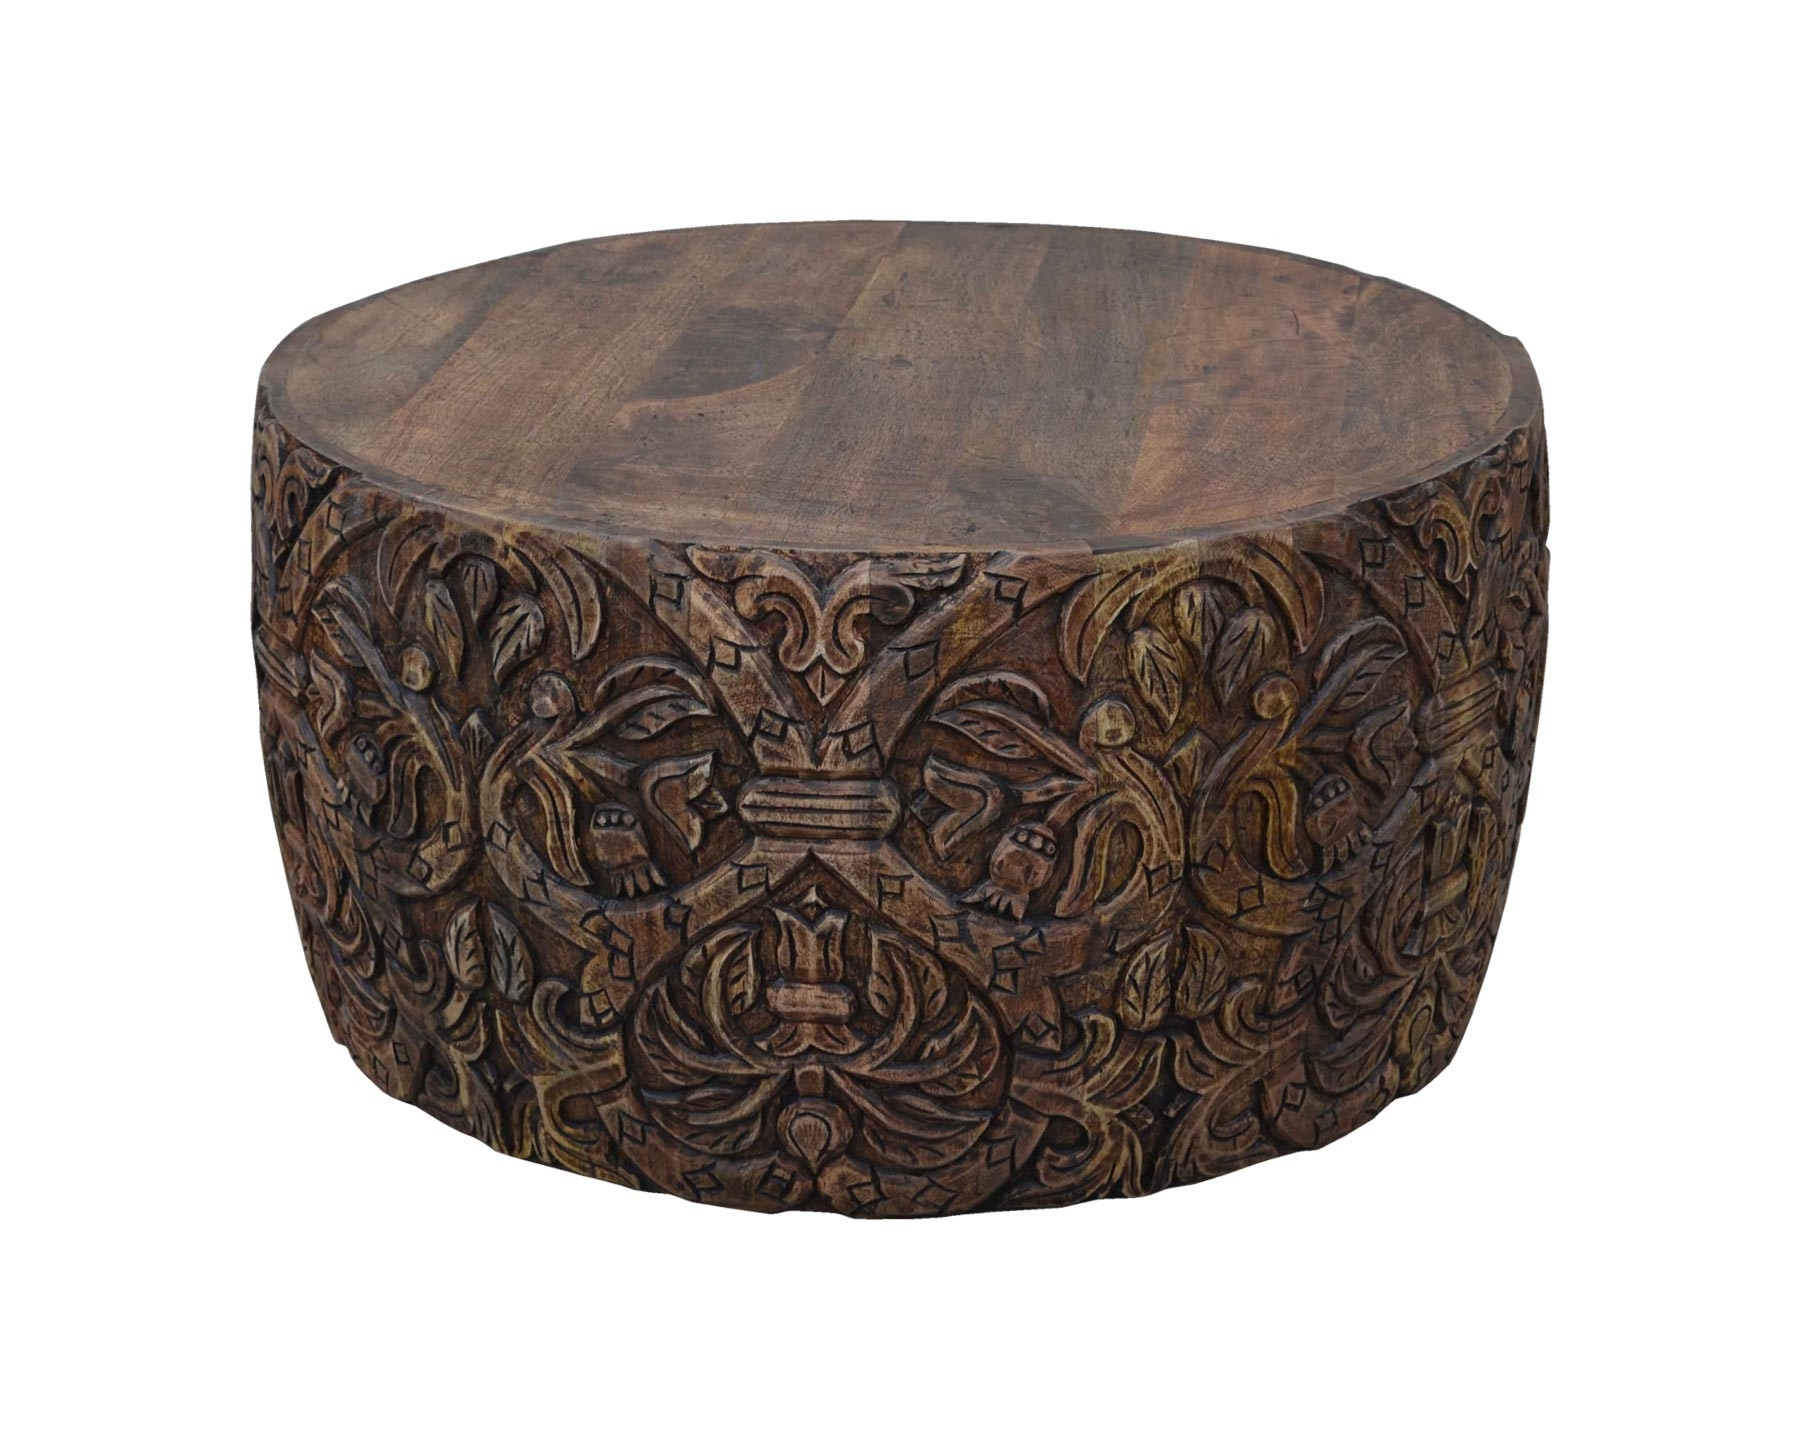 Round Carved Wood Coffee Table Carved Coffee Table | Vast - Wooden for Round Carved Wood Coffee Tables (Image 21 of 30)